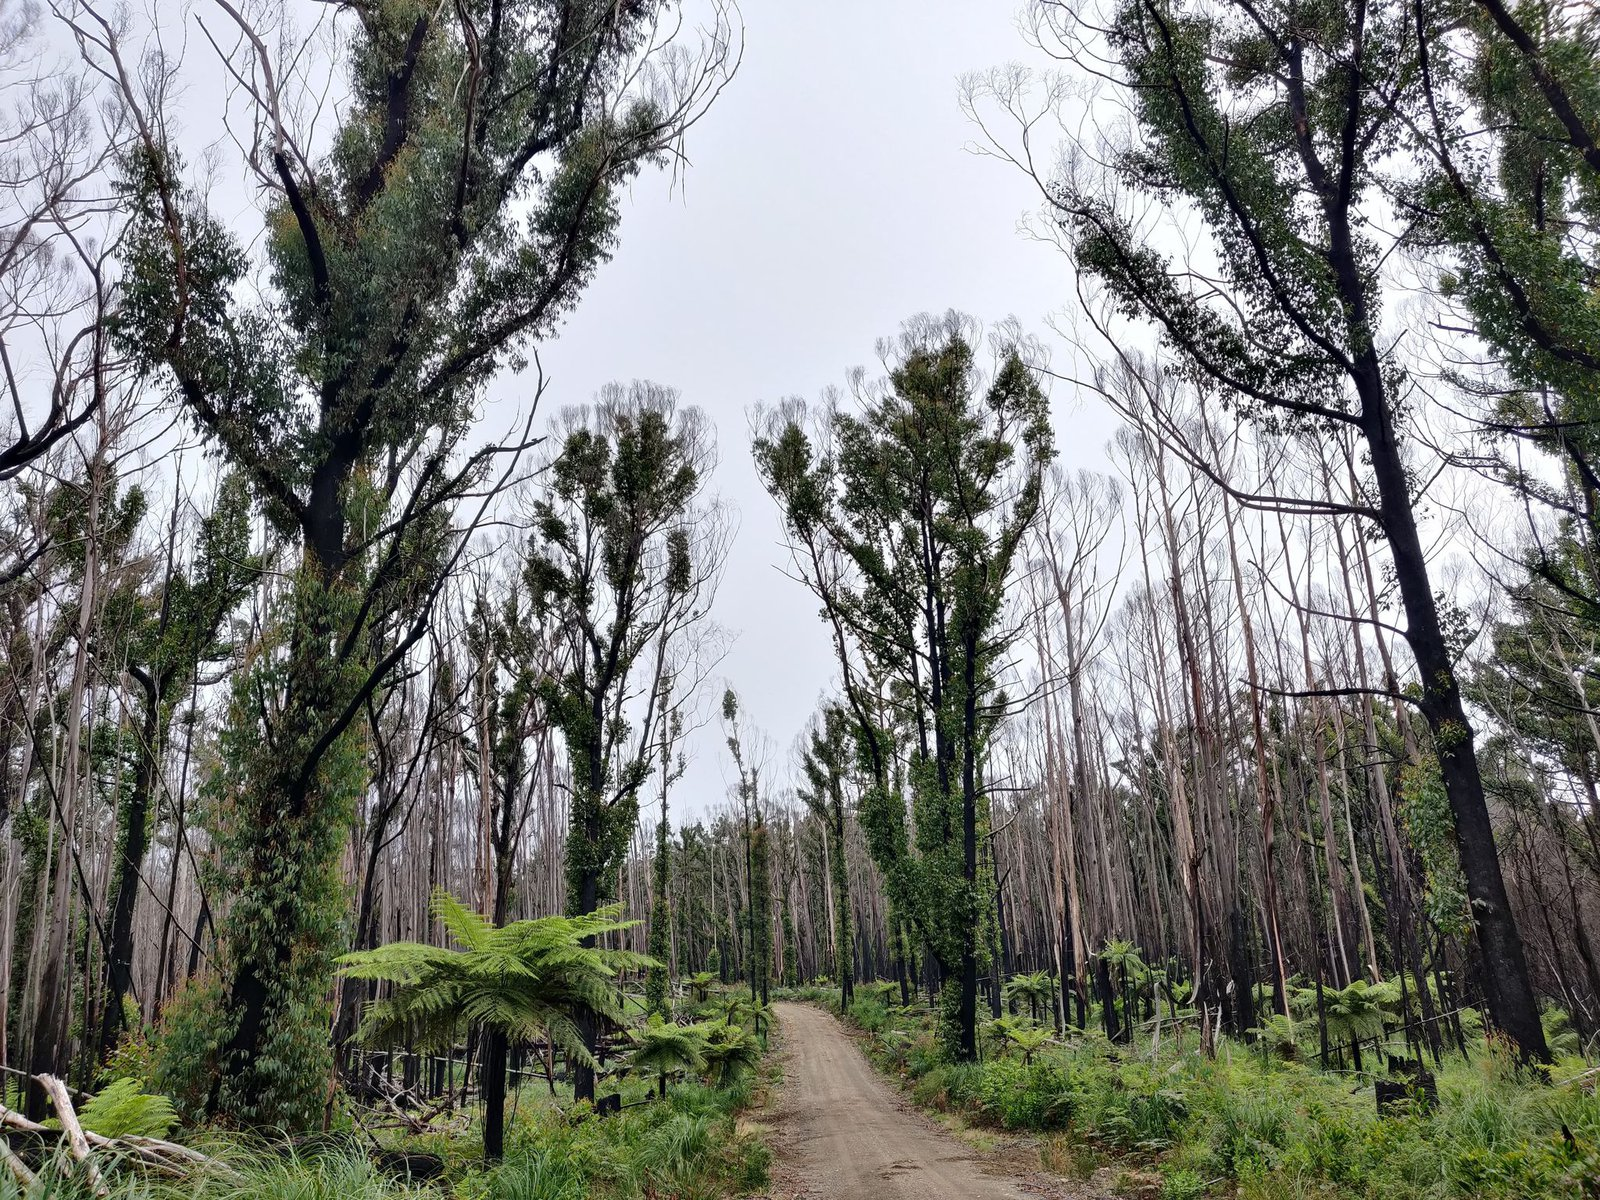 Example of burnt trees and regrowth, during fieldwork.